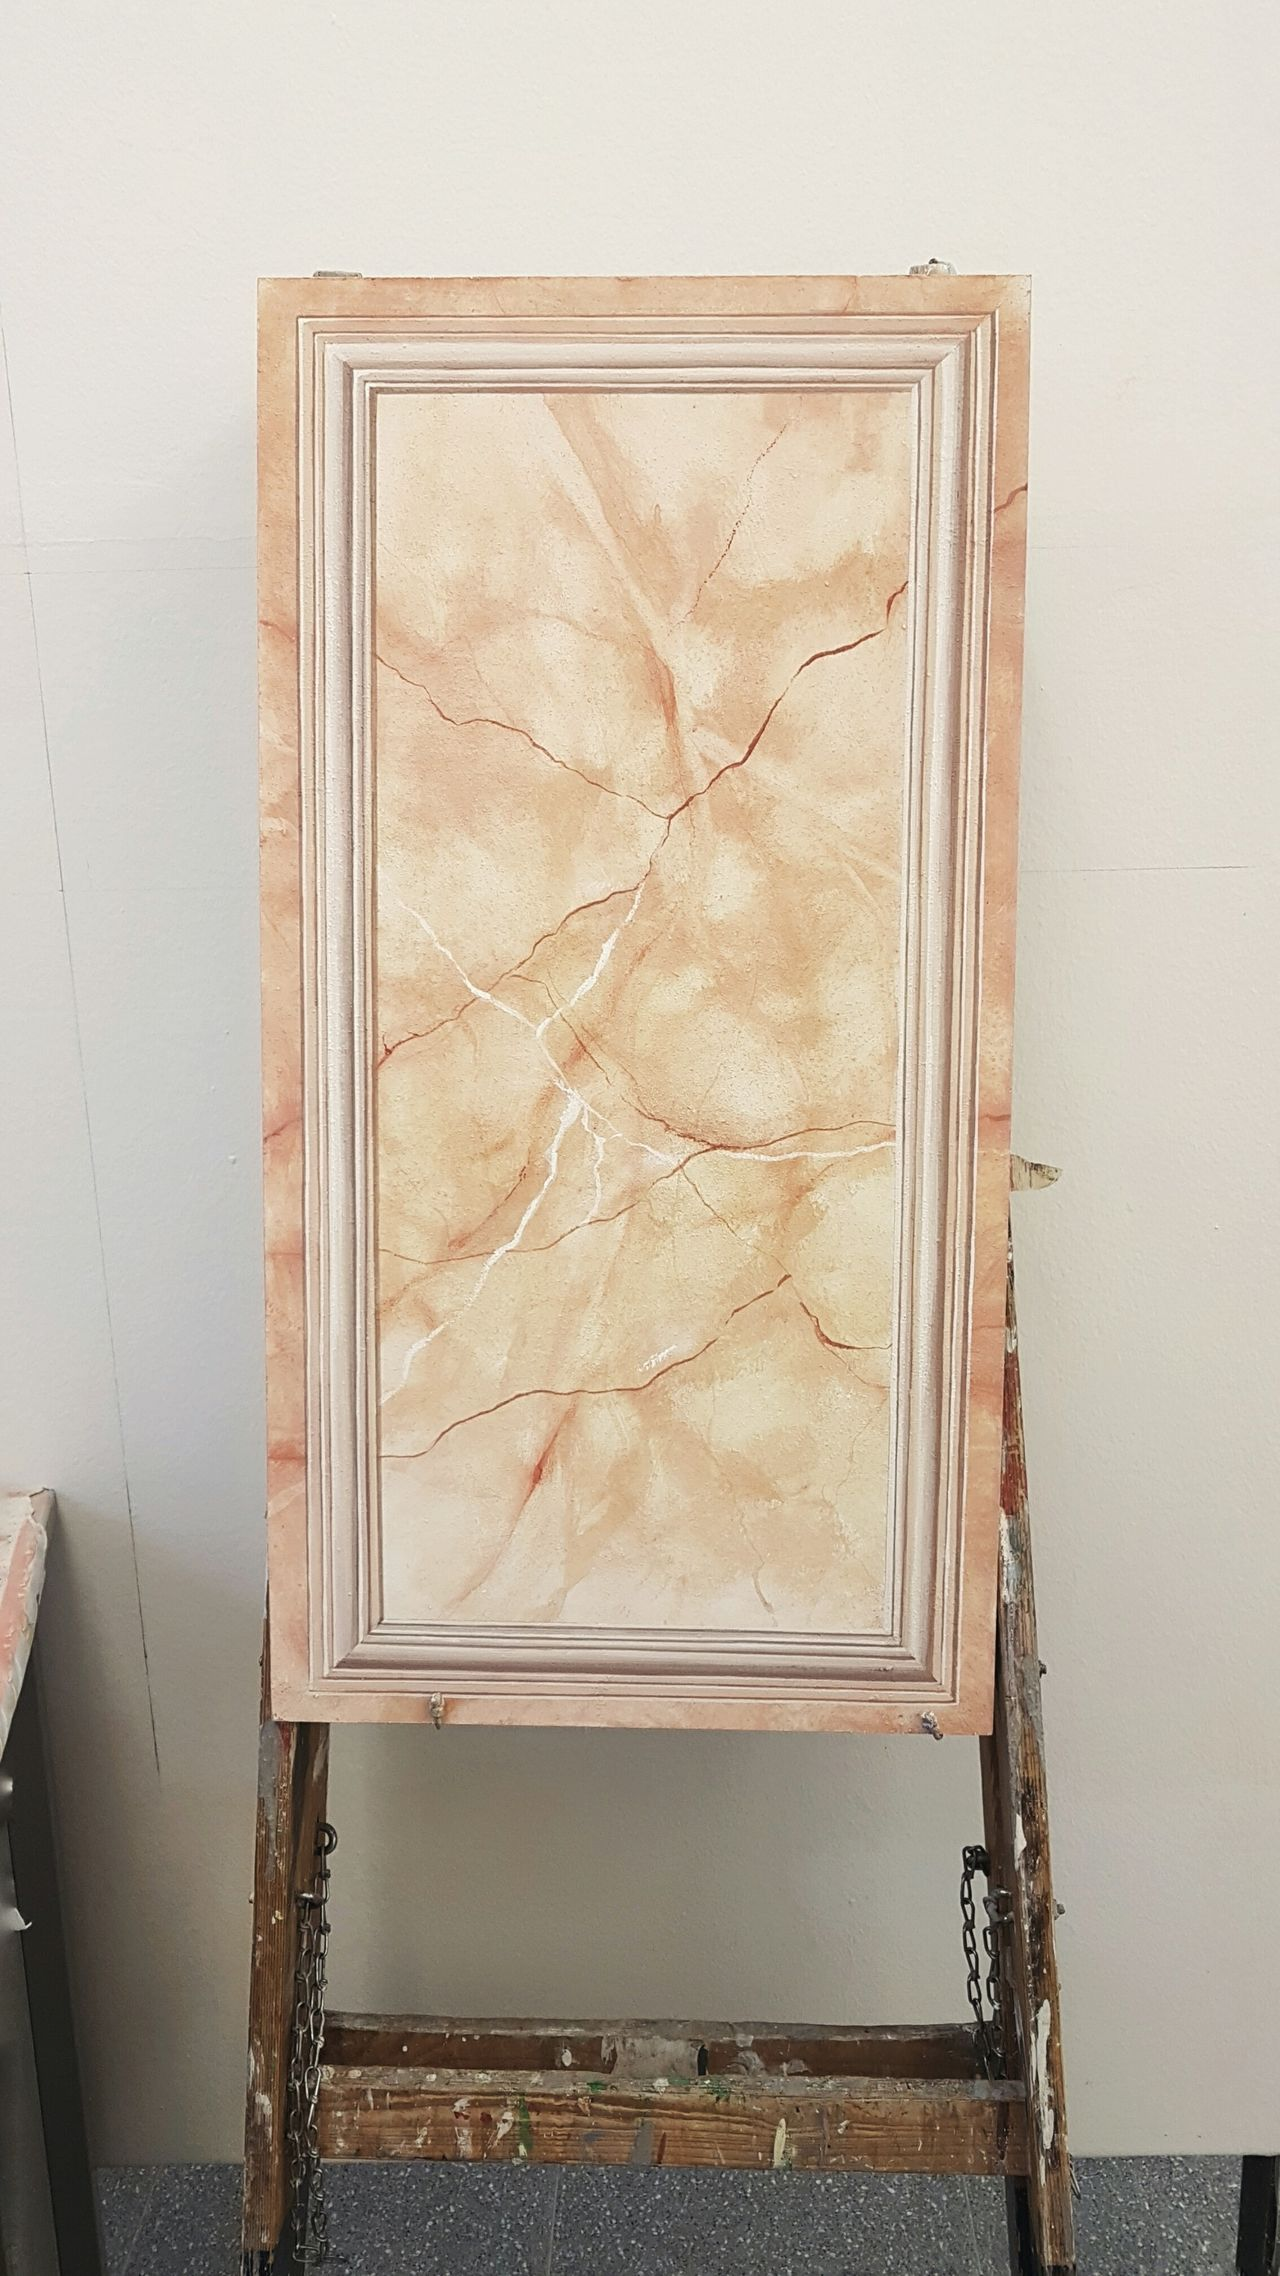 Textured  Indoors  Close-up Day No People Sunlight Warm Light Room Decor ThatsMe Frame It! Frame Marmor Stone Material Stone - Object Painted Image Painted ArtWork Art Artistic Artistic Photo Frames Enjoying The View Light And Shadow Decoration Painting Art